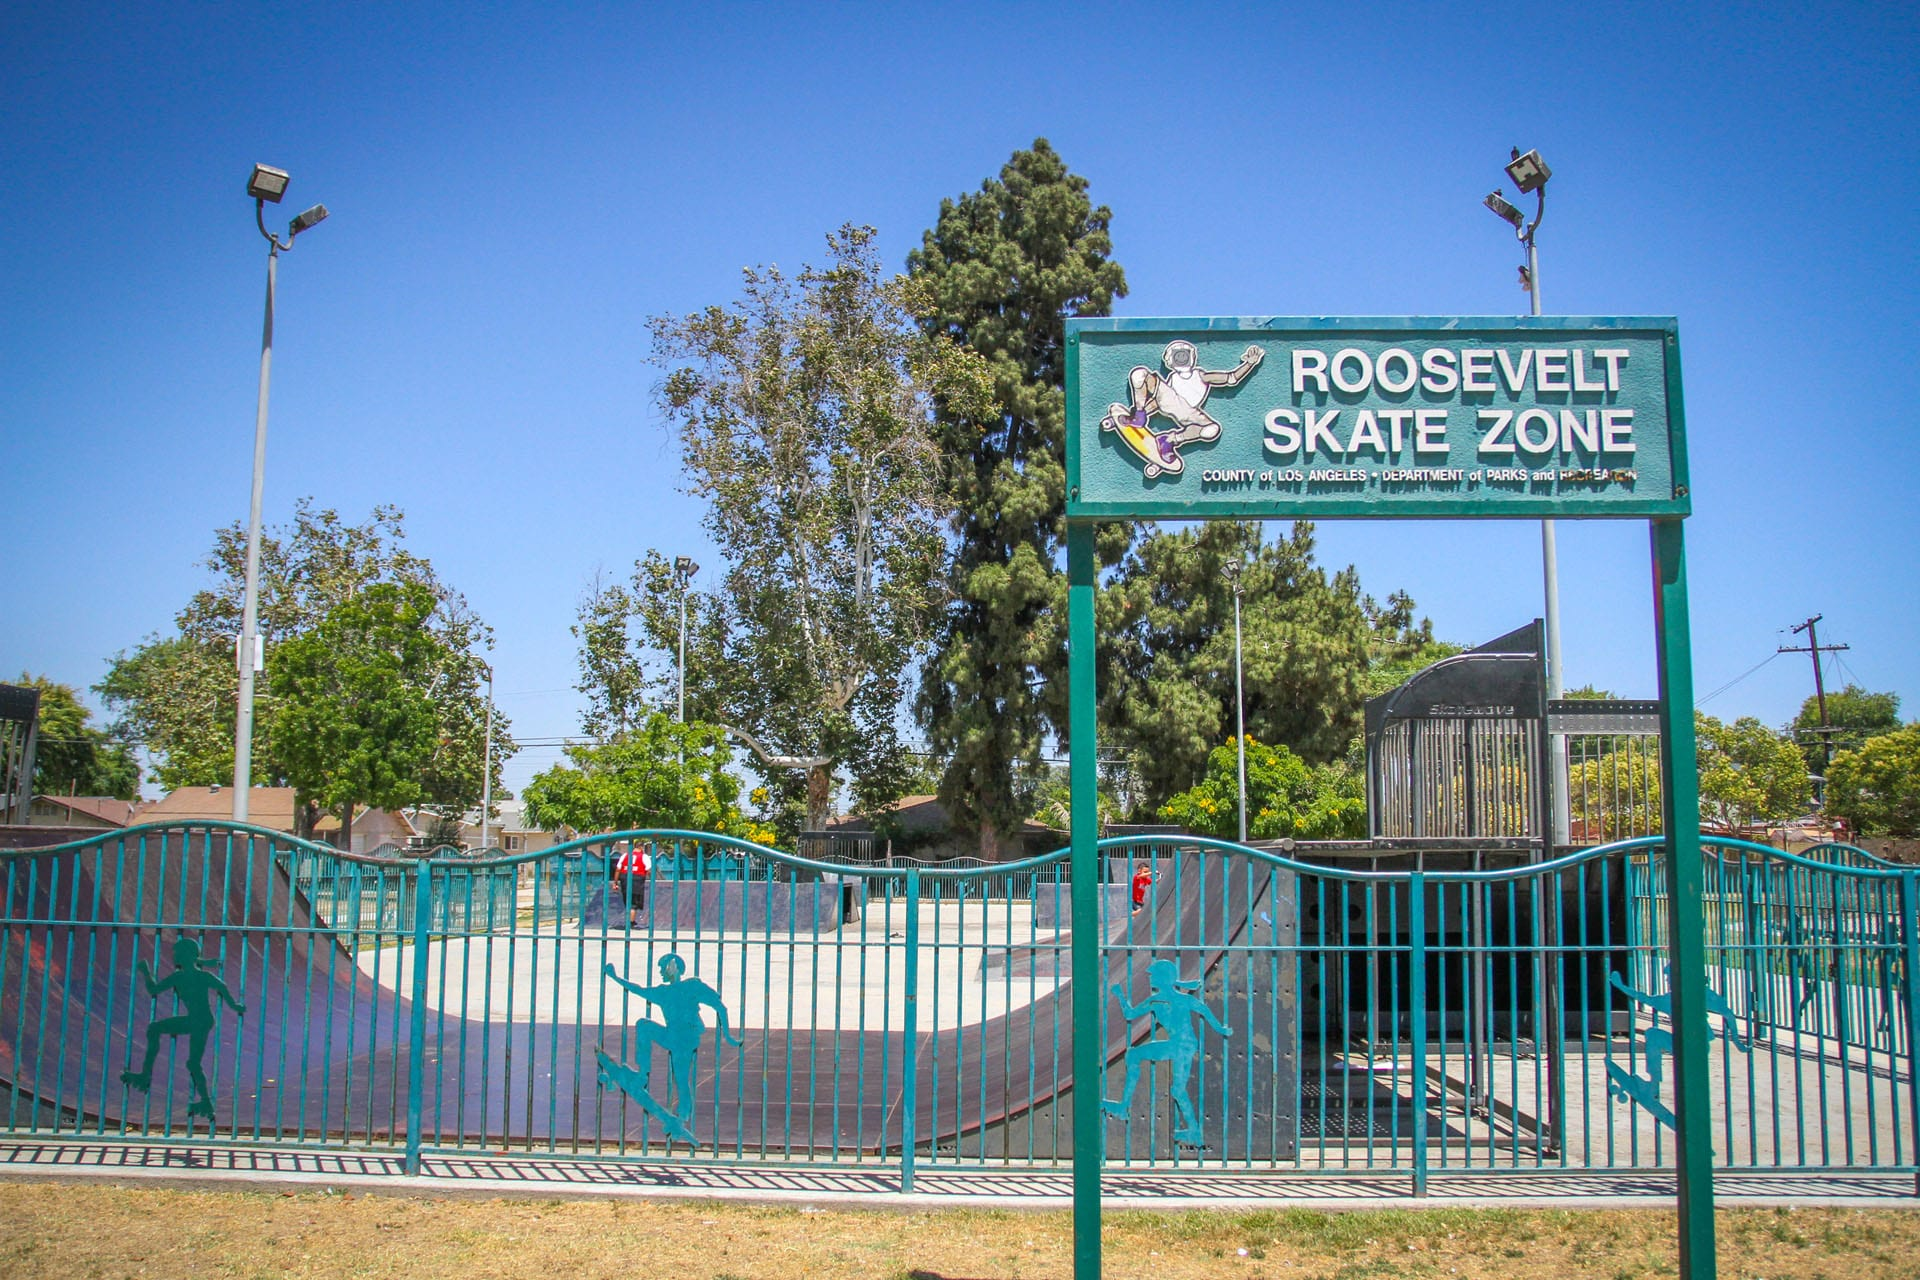 Roosevelt Skate Zone sign